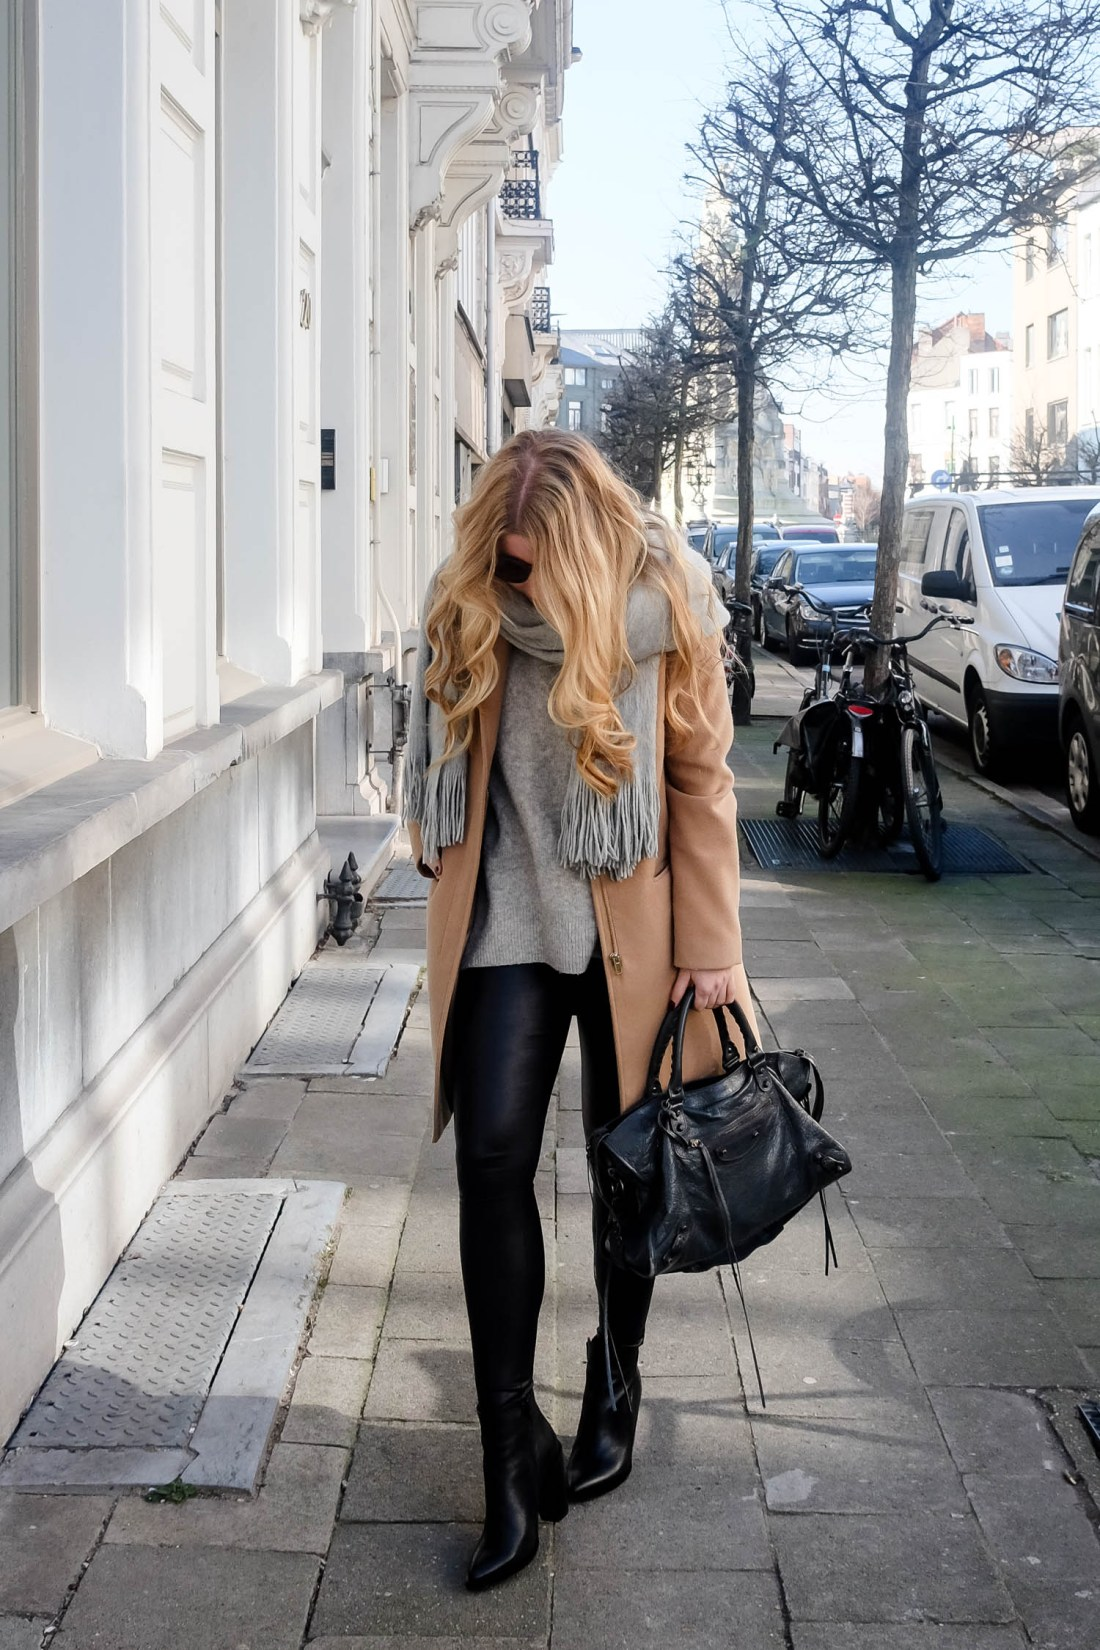 Elien Migalski Streetstyle Outfit March 2016 Sacha shoes